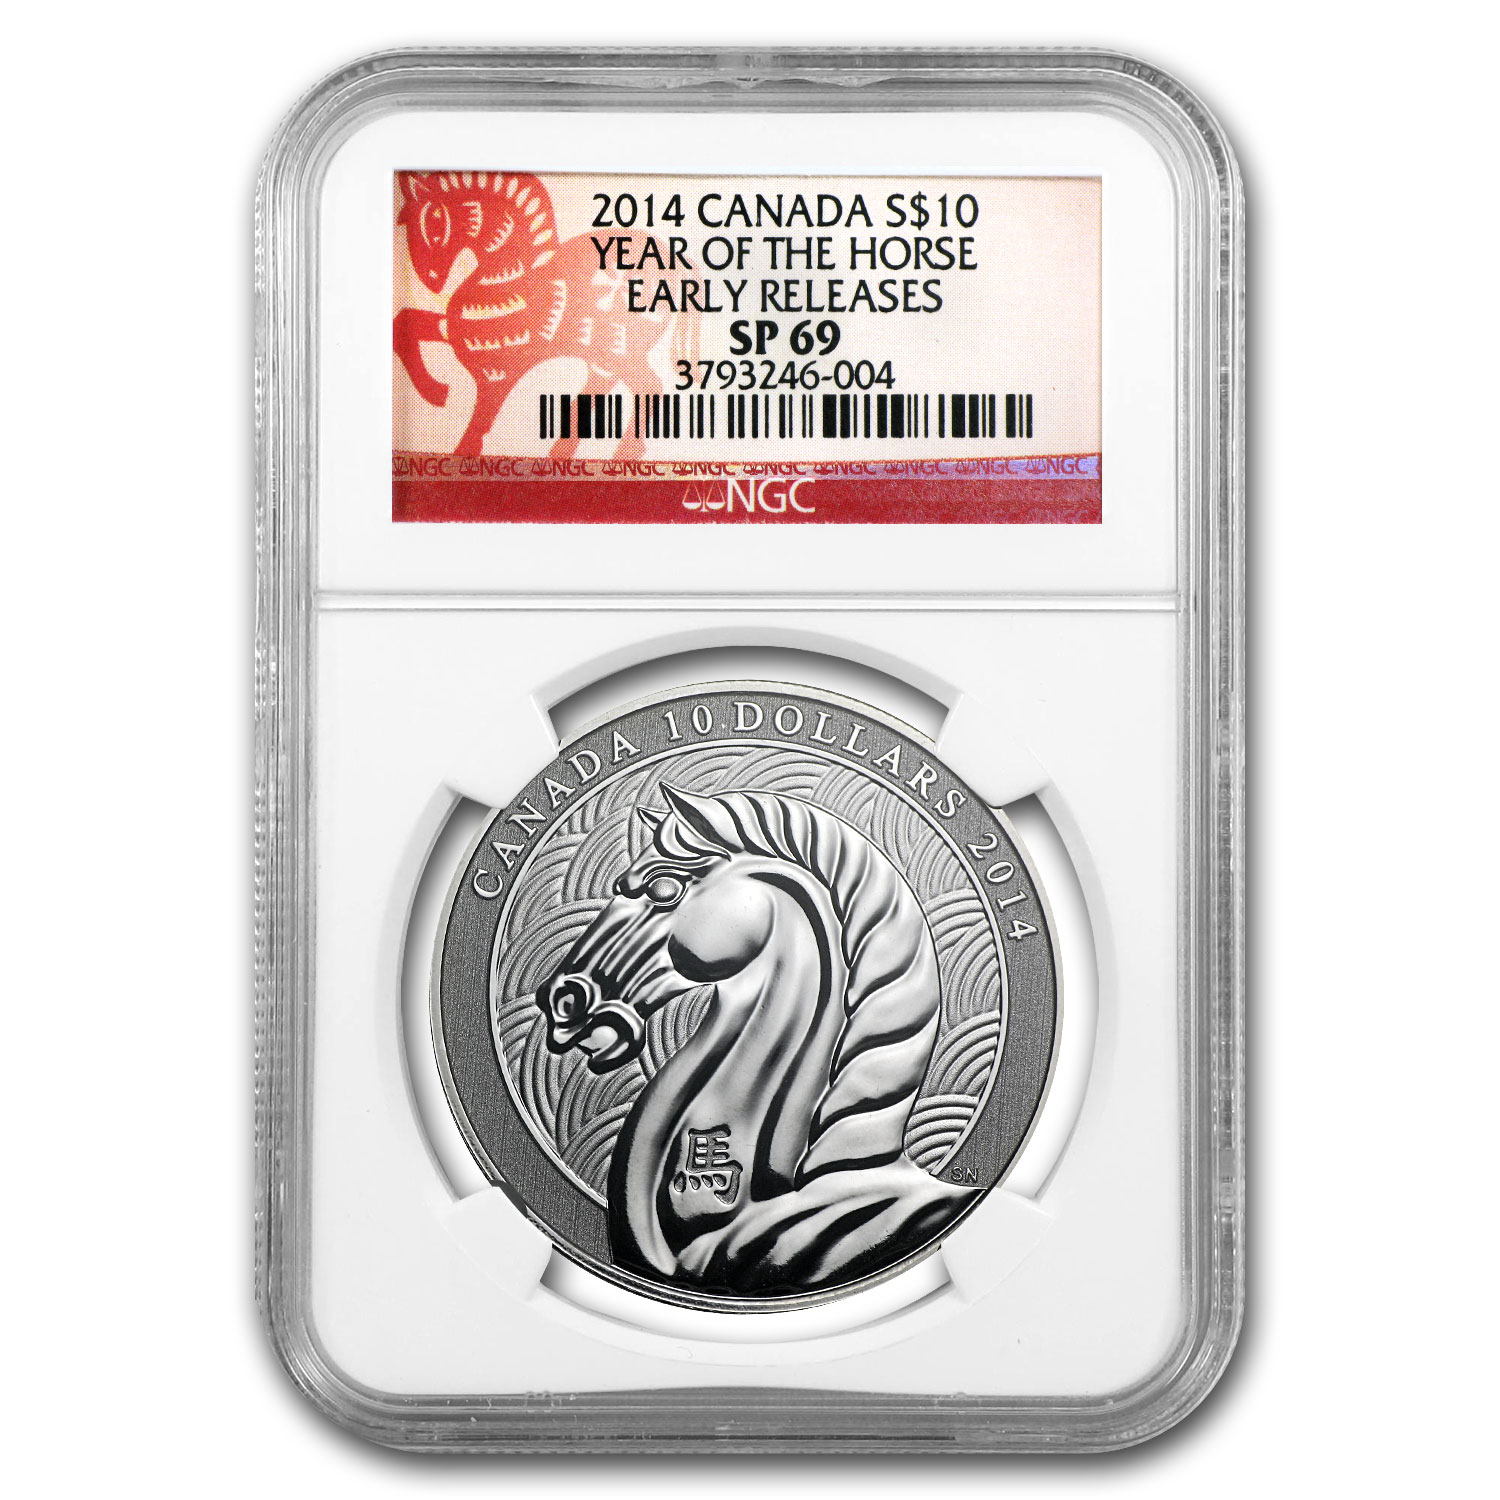 2014 Canada 1/2 oz Silver $10 Year of the Horse SP-69 NGC (ER)